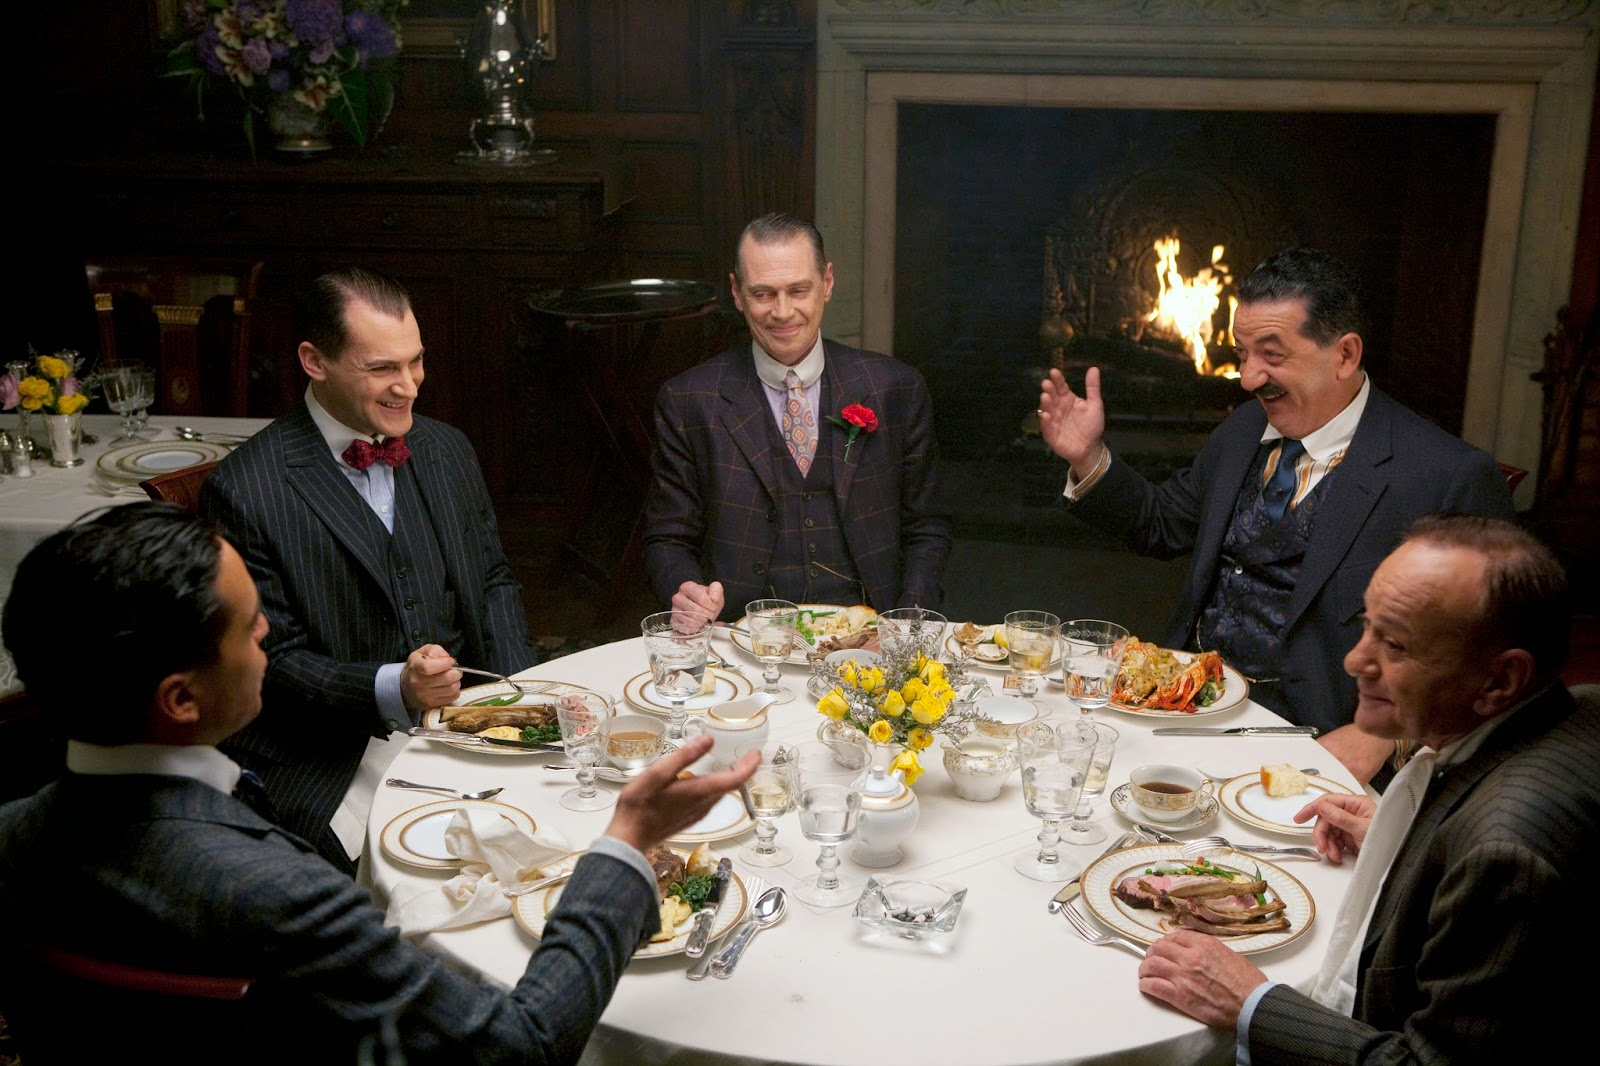 Boardwalk Empire HBO #AllEmpireEnds